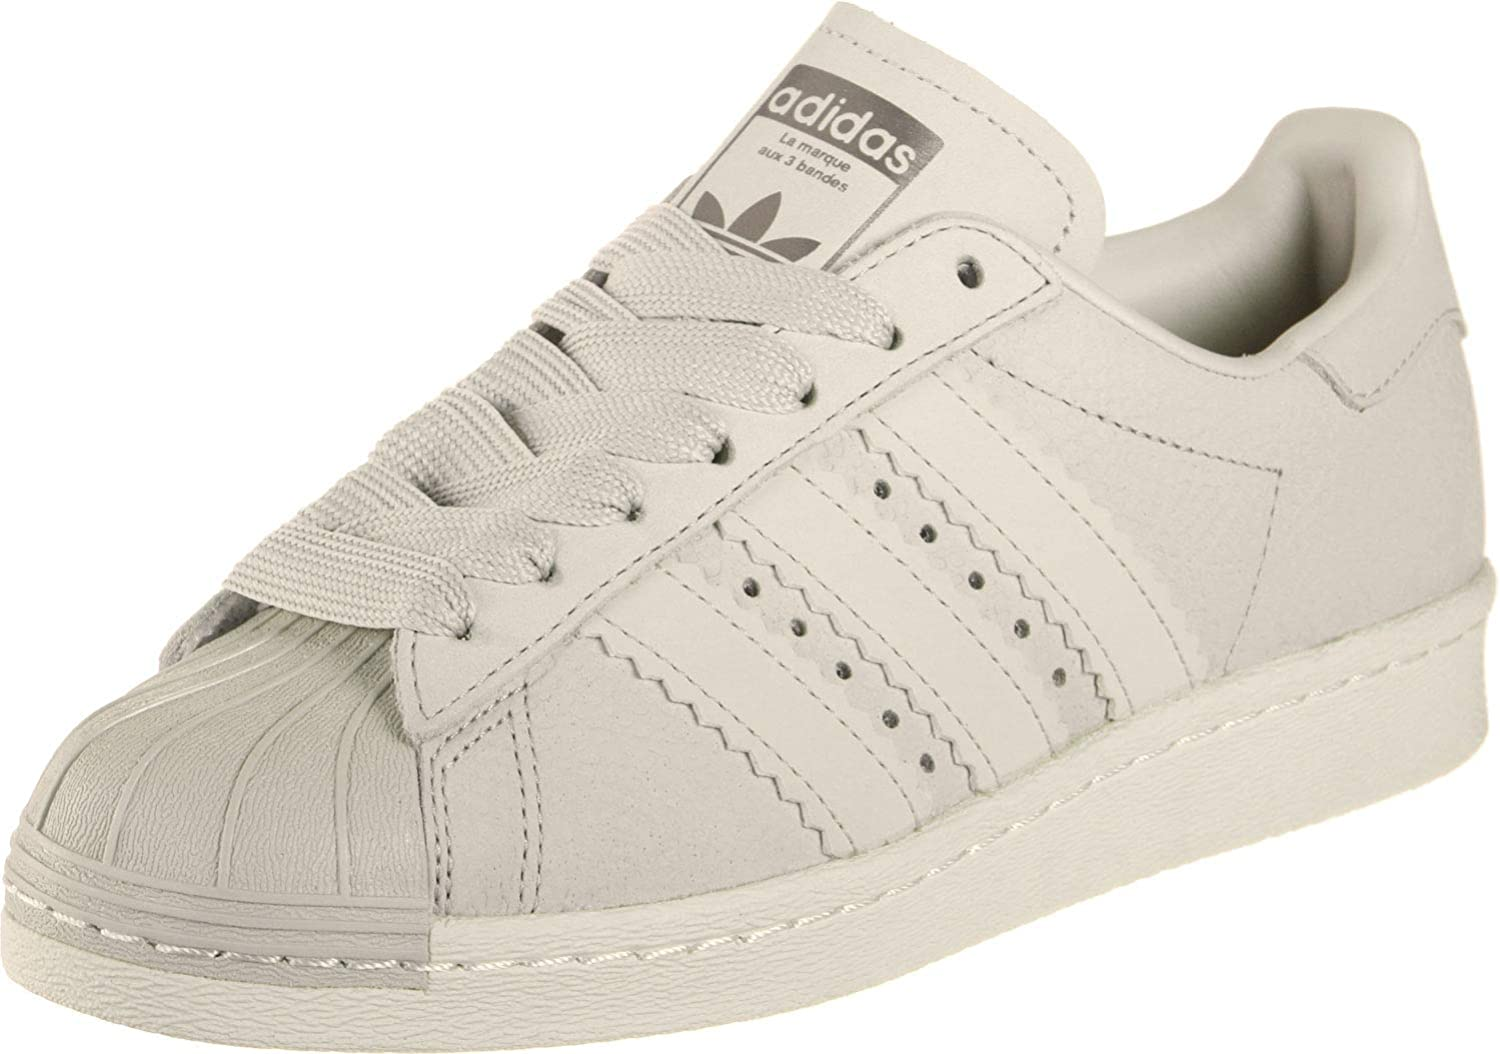 Superstar 80s W Fitness Shoes